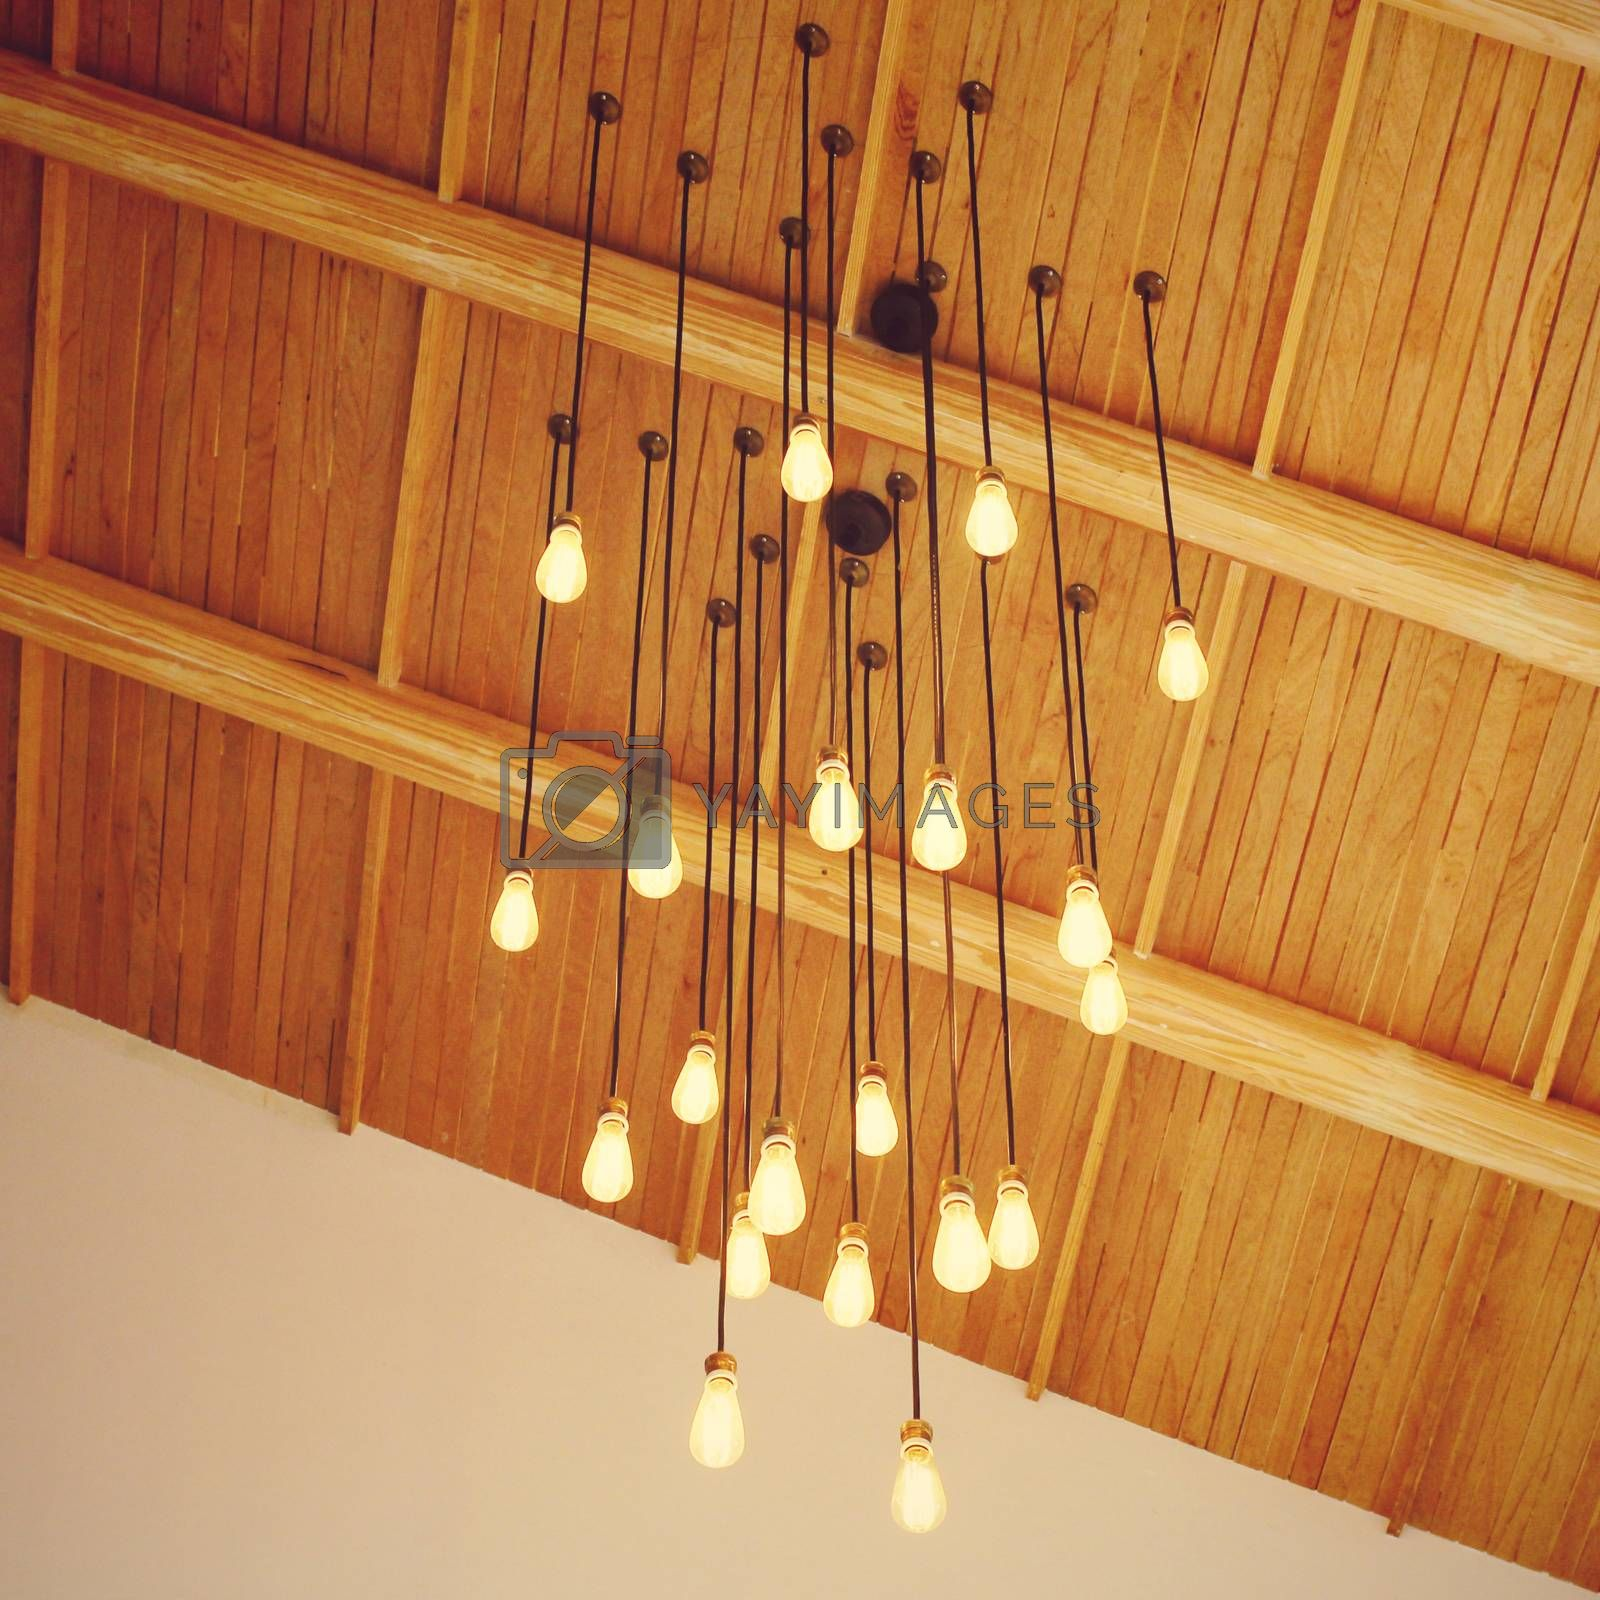 Vintage lighting decor hanging from ceiling with retro filter effect